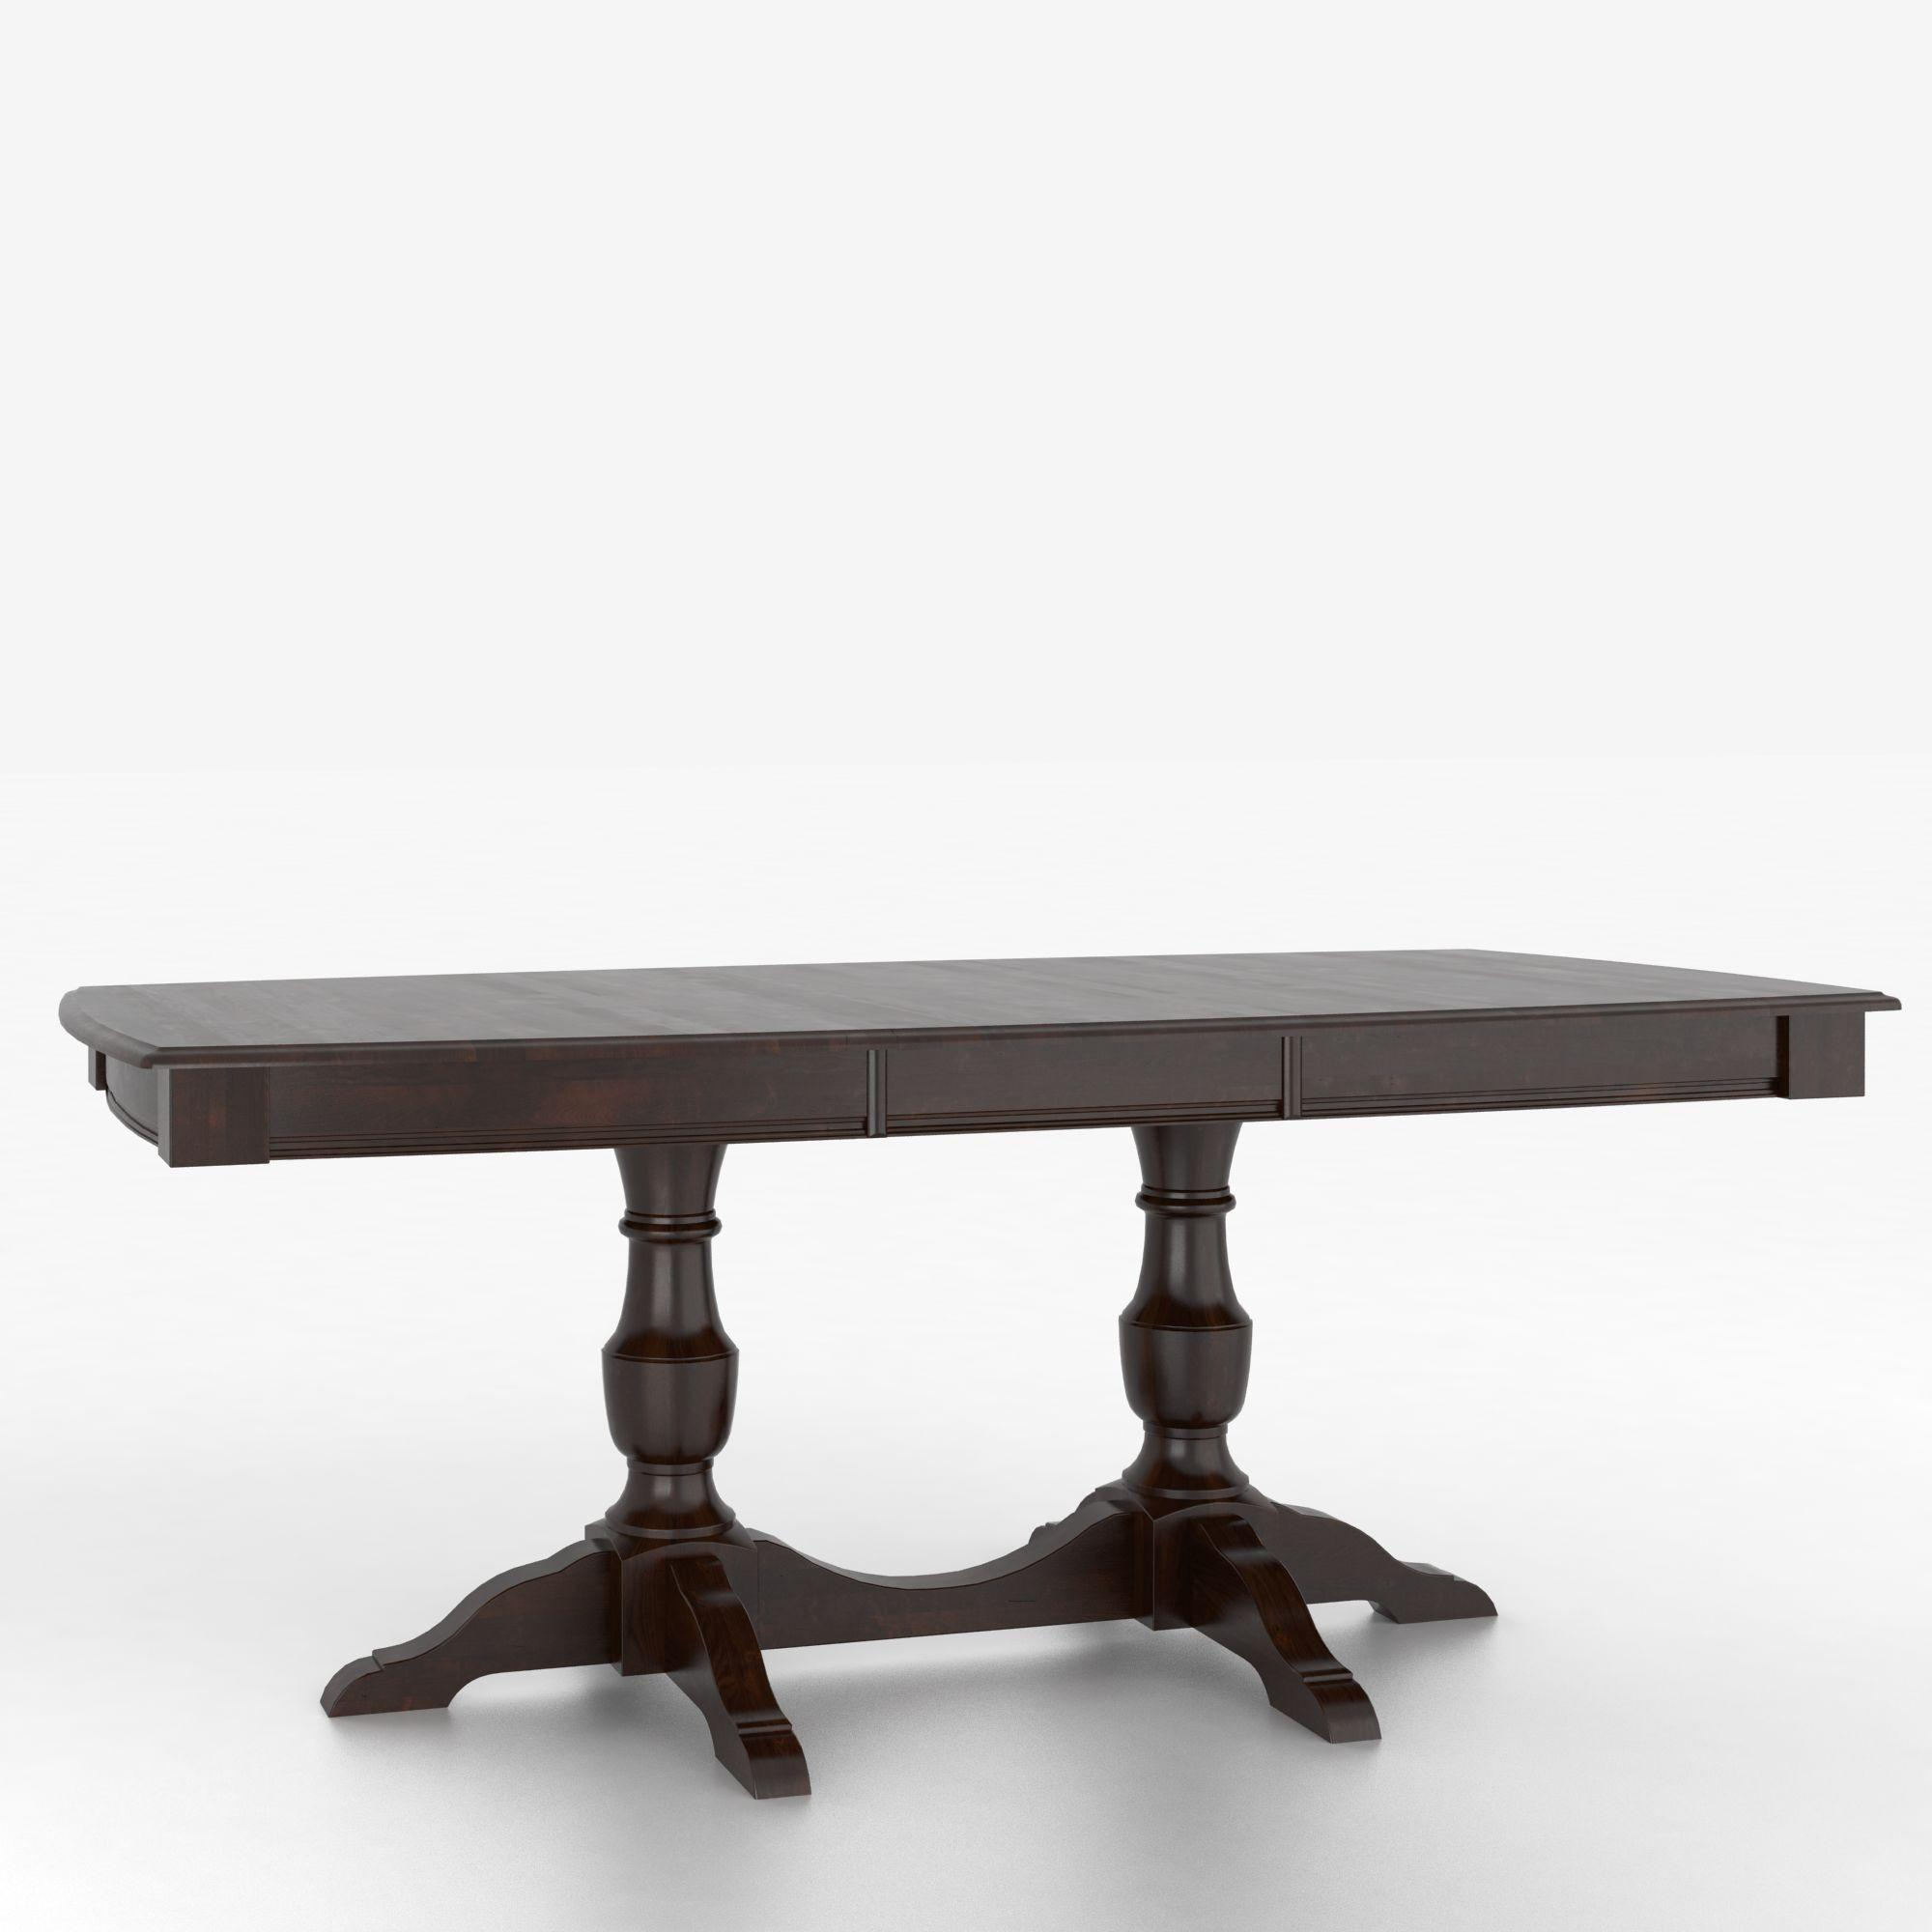 Customizable Boat Shape Table with Pedestal